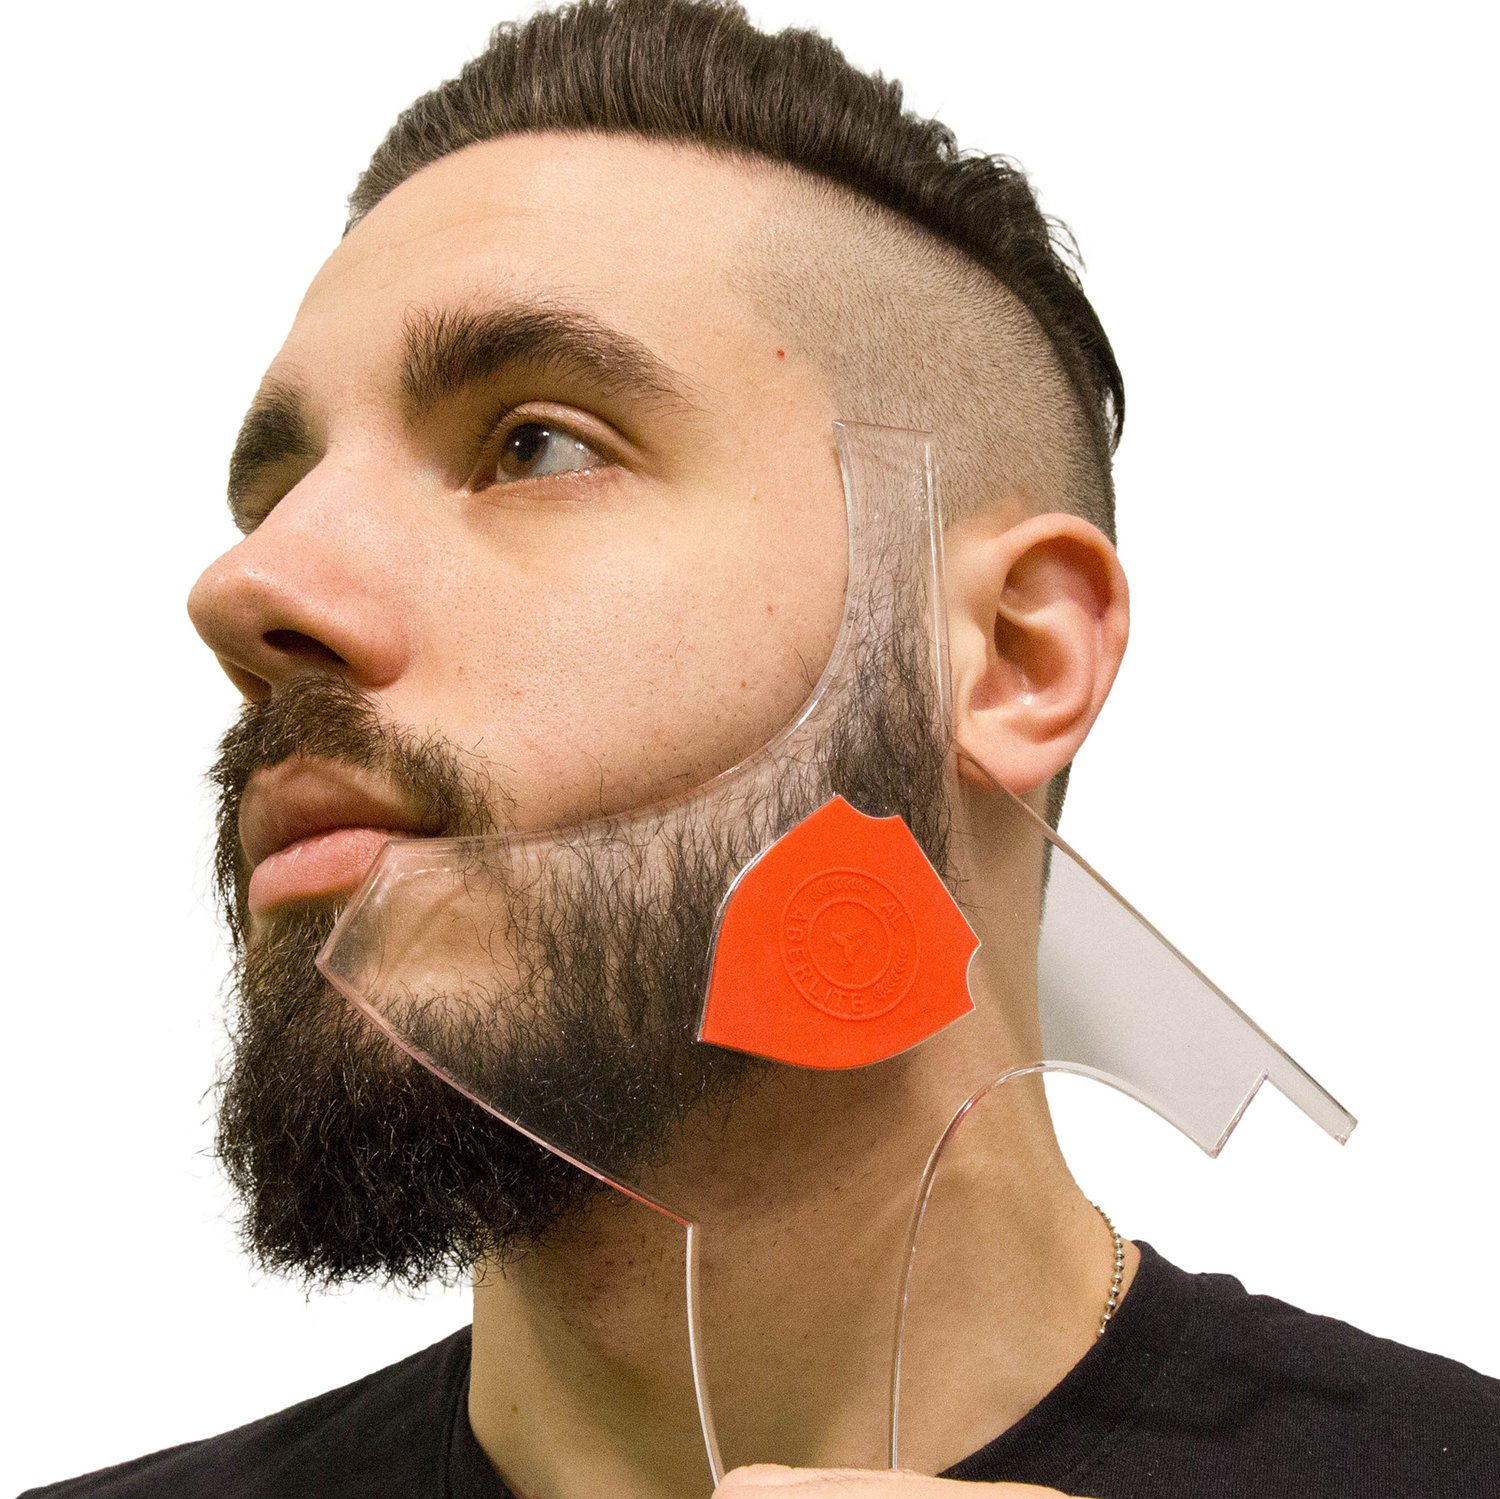 Aberlite Beard Shaper - Beard Lineup Tool W/Barber Pencil (White) - 100% Clear | Many Styles | Long Edges | Anti-Slip - The Ultimate Beard Shaping Tool (Blue) - Beard Stencil Guide - Works w/Trimmer